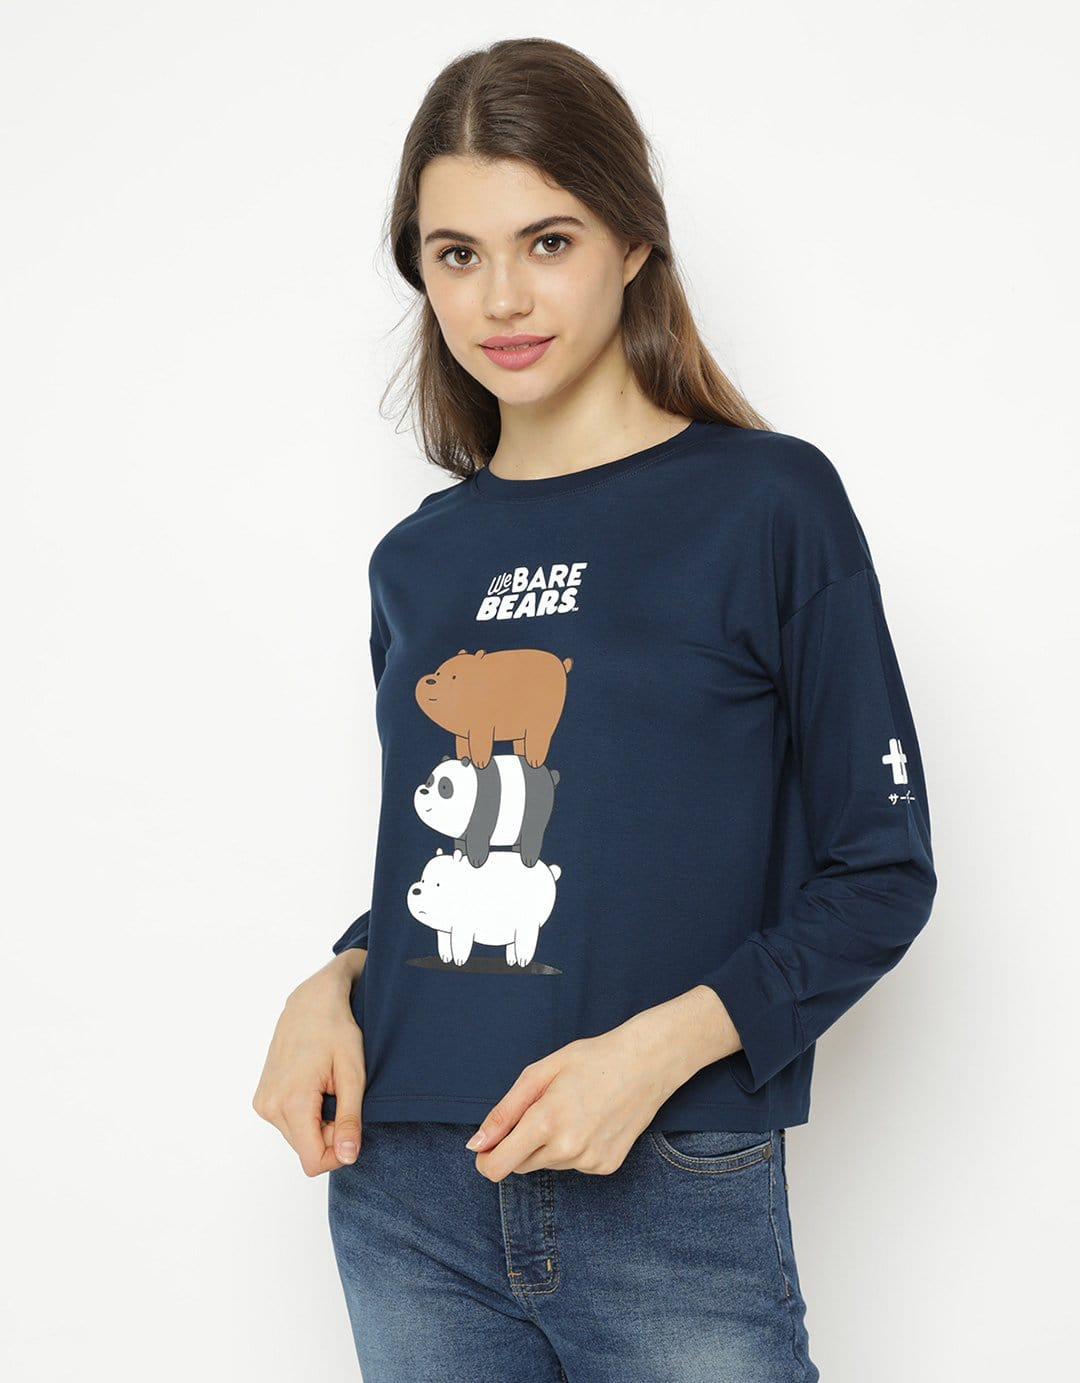 LTC63 lv we bare bears bearstack navy kaos hijab ladies WBB